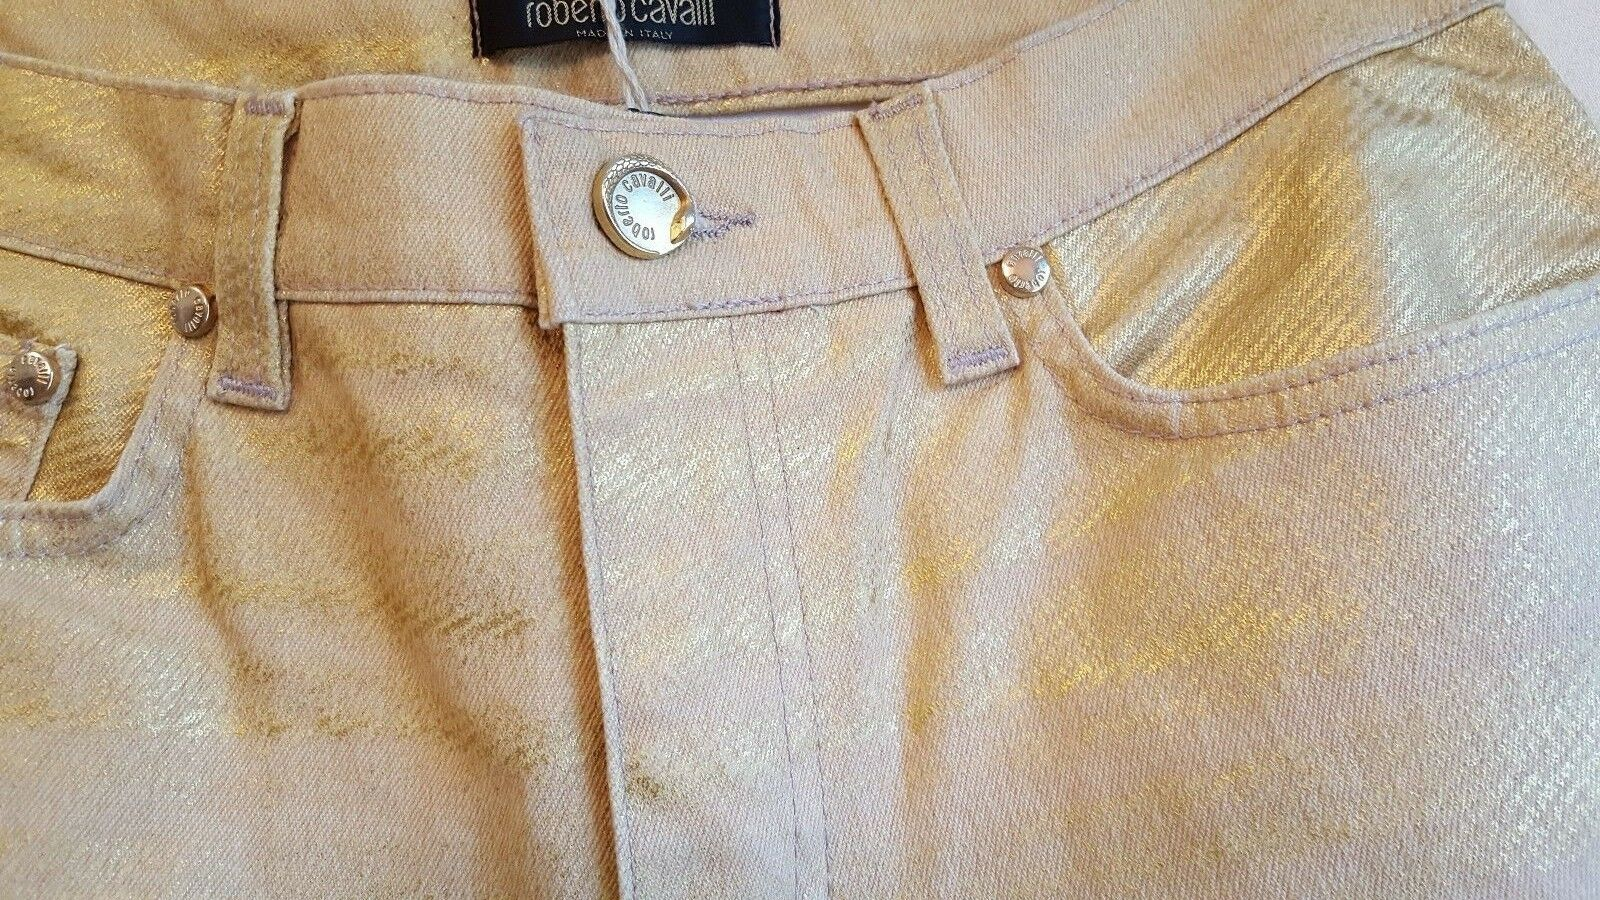 Roberto Cavalli - New With Tags - gold Metallic Jeans, Size Small